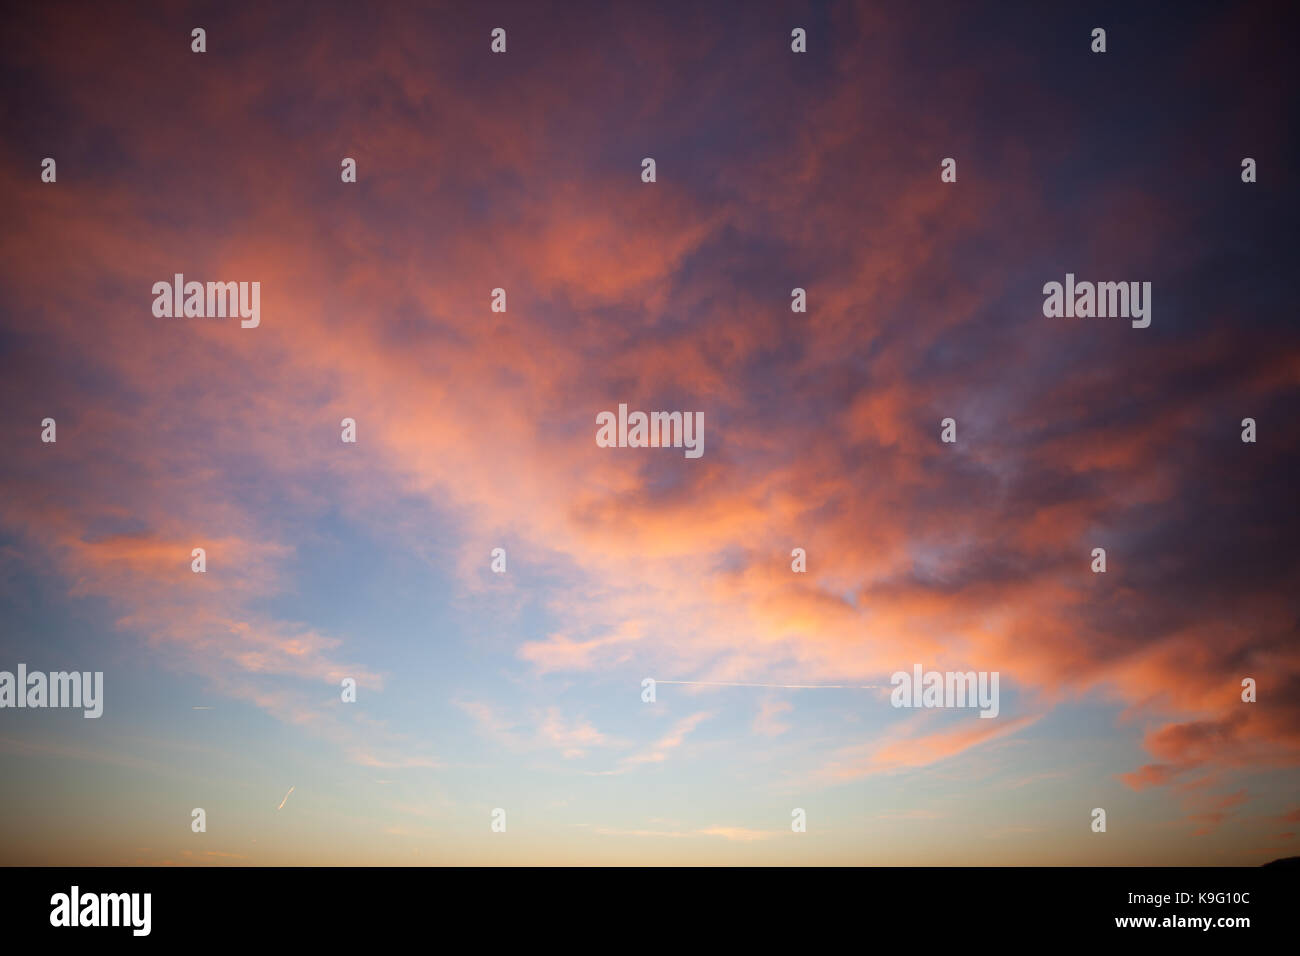 Colorful background: sky overlay, setting sun. - Stock Image